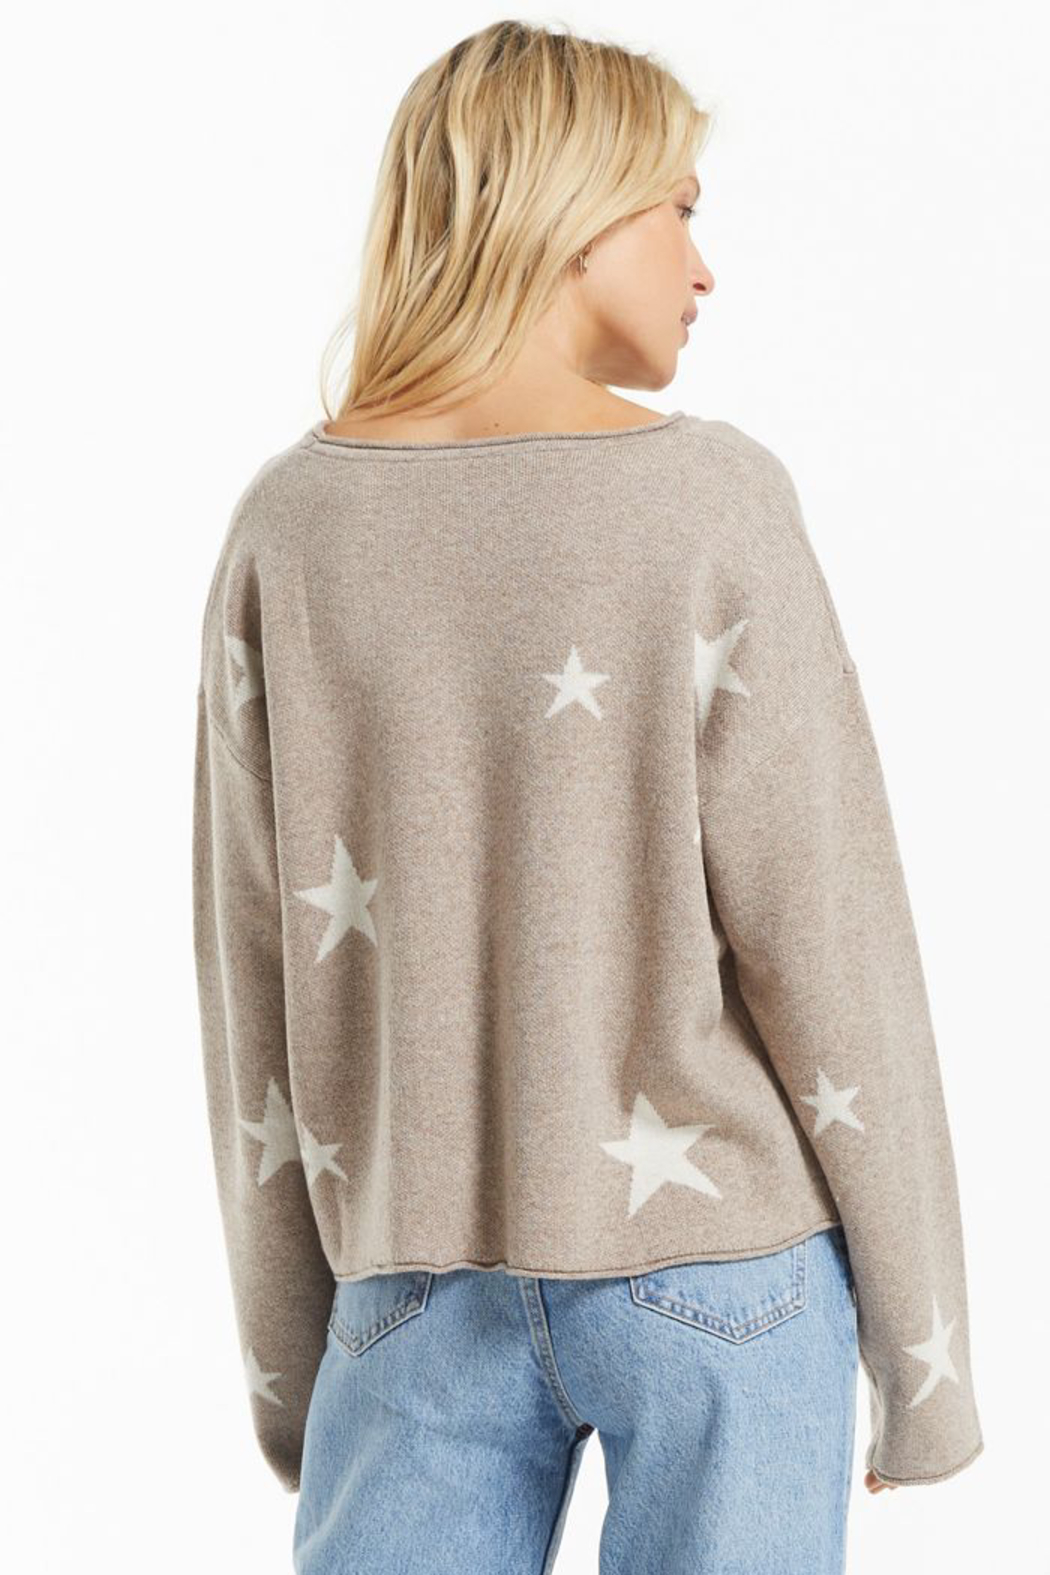 z supply Kennedy Star Sweater - Front Full Image